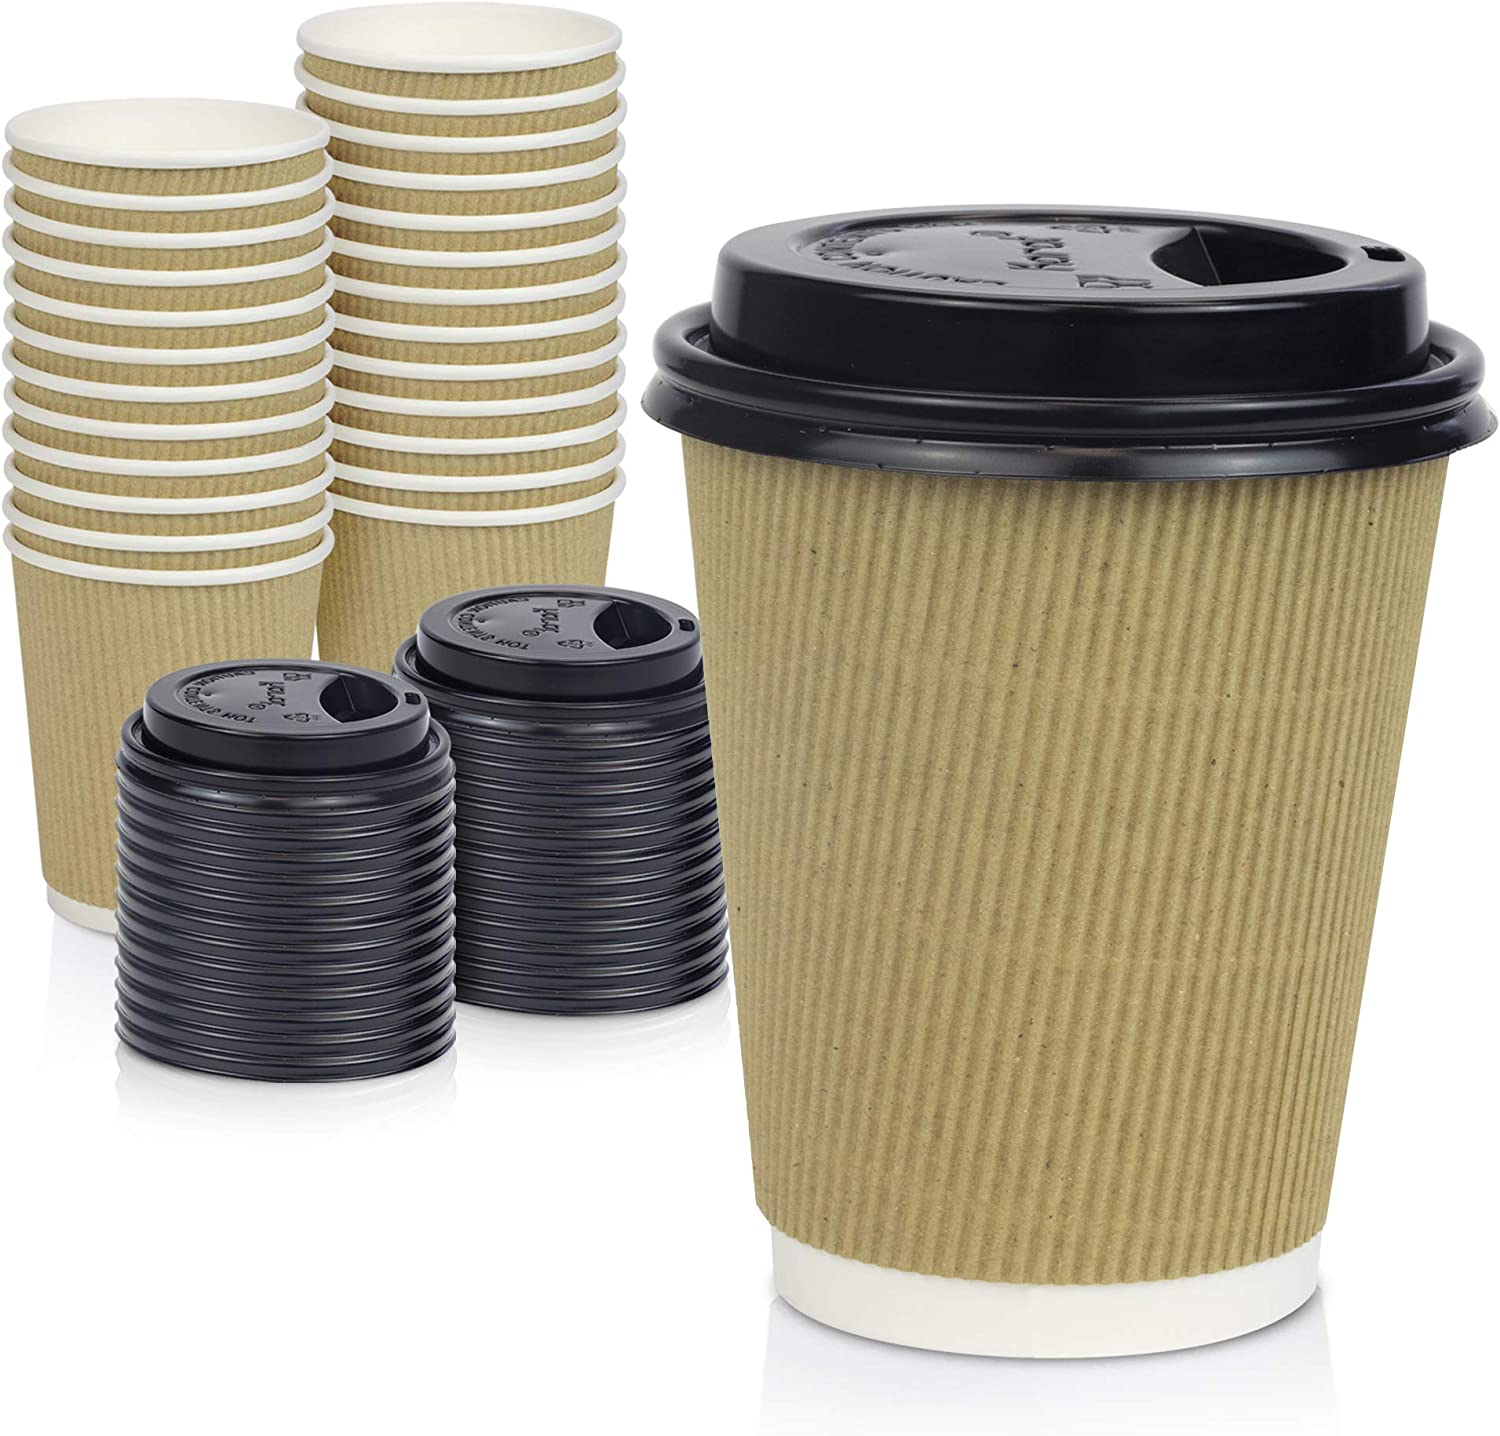 [50 Pack] Disposable Hot Cups with Lids - 12 oz Brown Double Wall Insulated Ripple Sleeves Coffee Cups with Black Dome Lid - Kraft Paper Cup for To Go Chocolate, Tea, and Cocoa Drinks